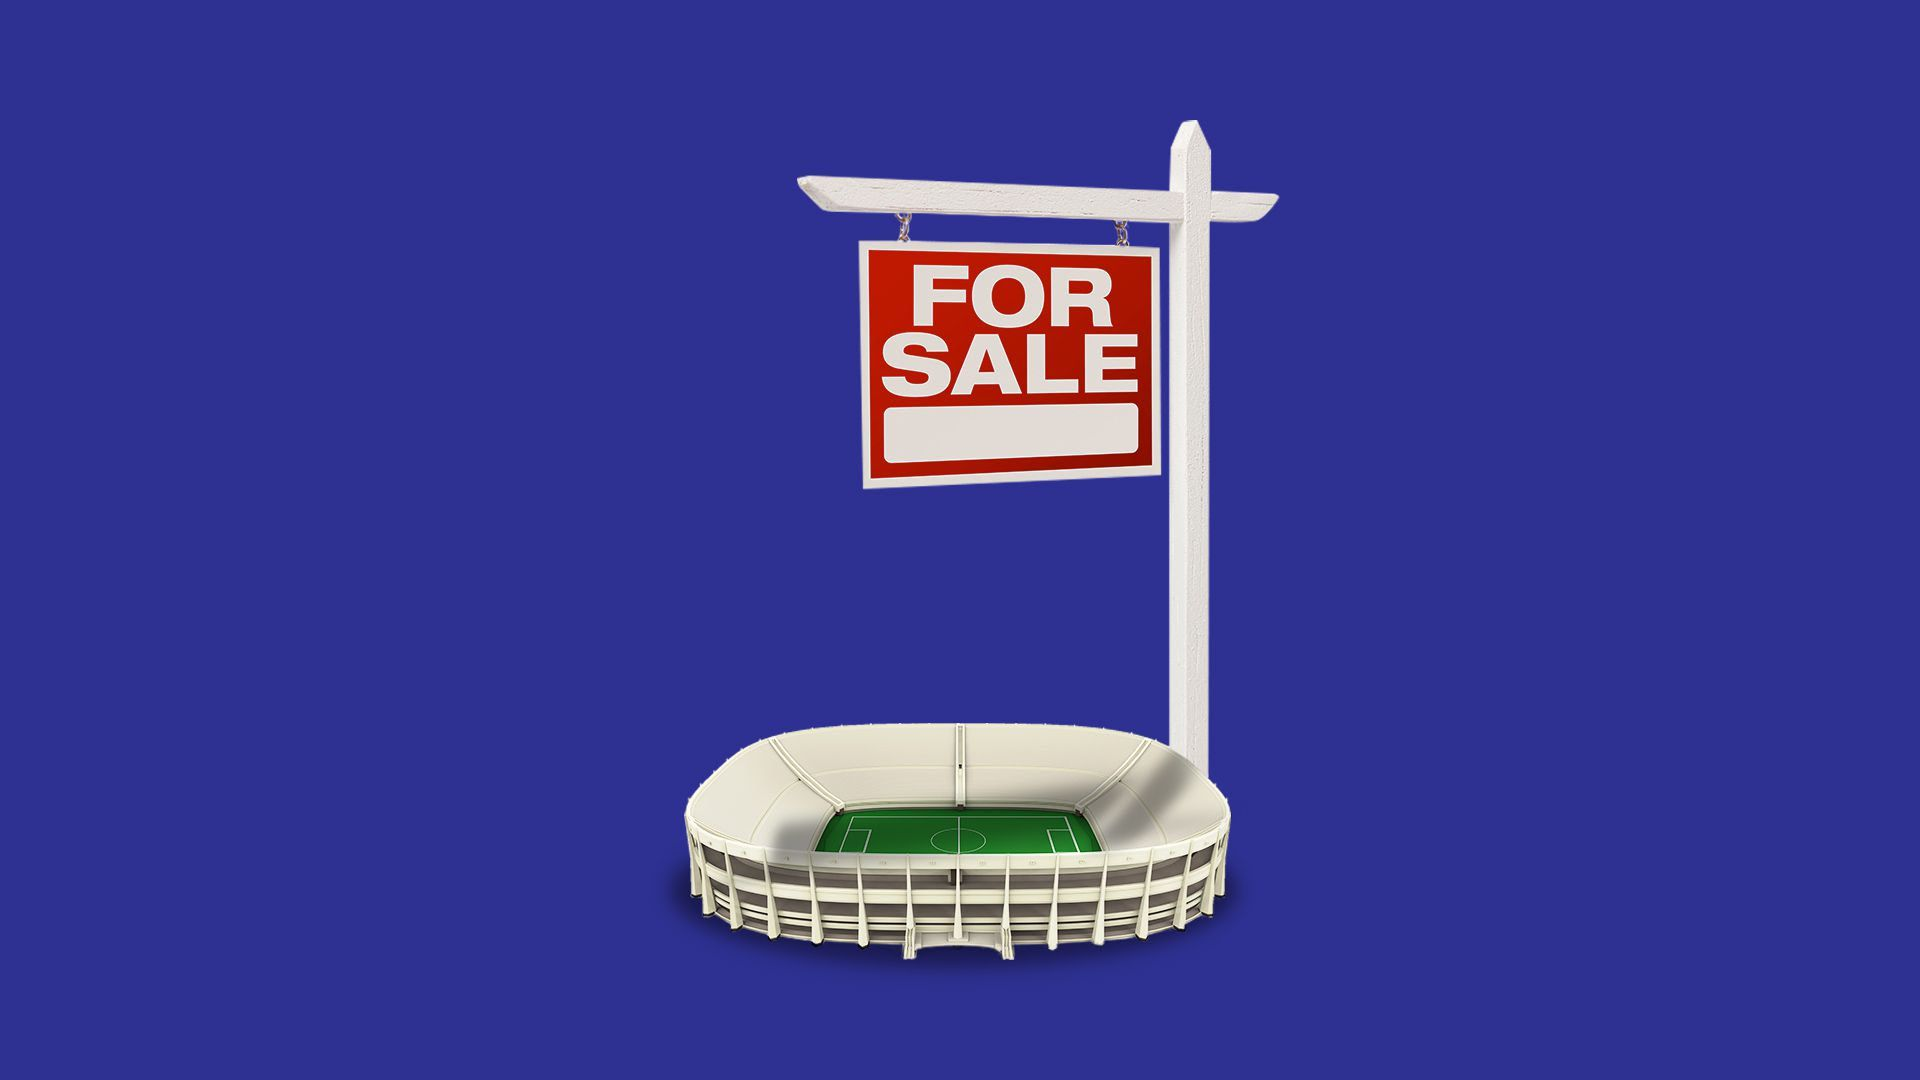 An illustration of a stadium with an oversized for sale sign on it.